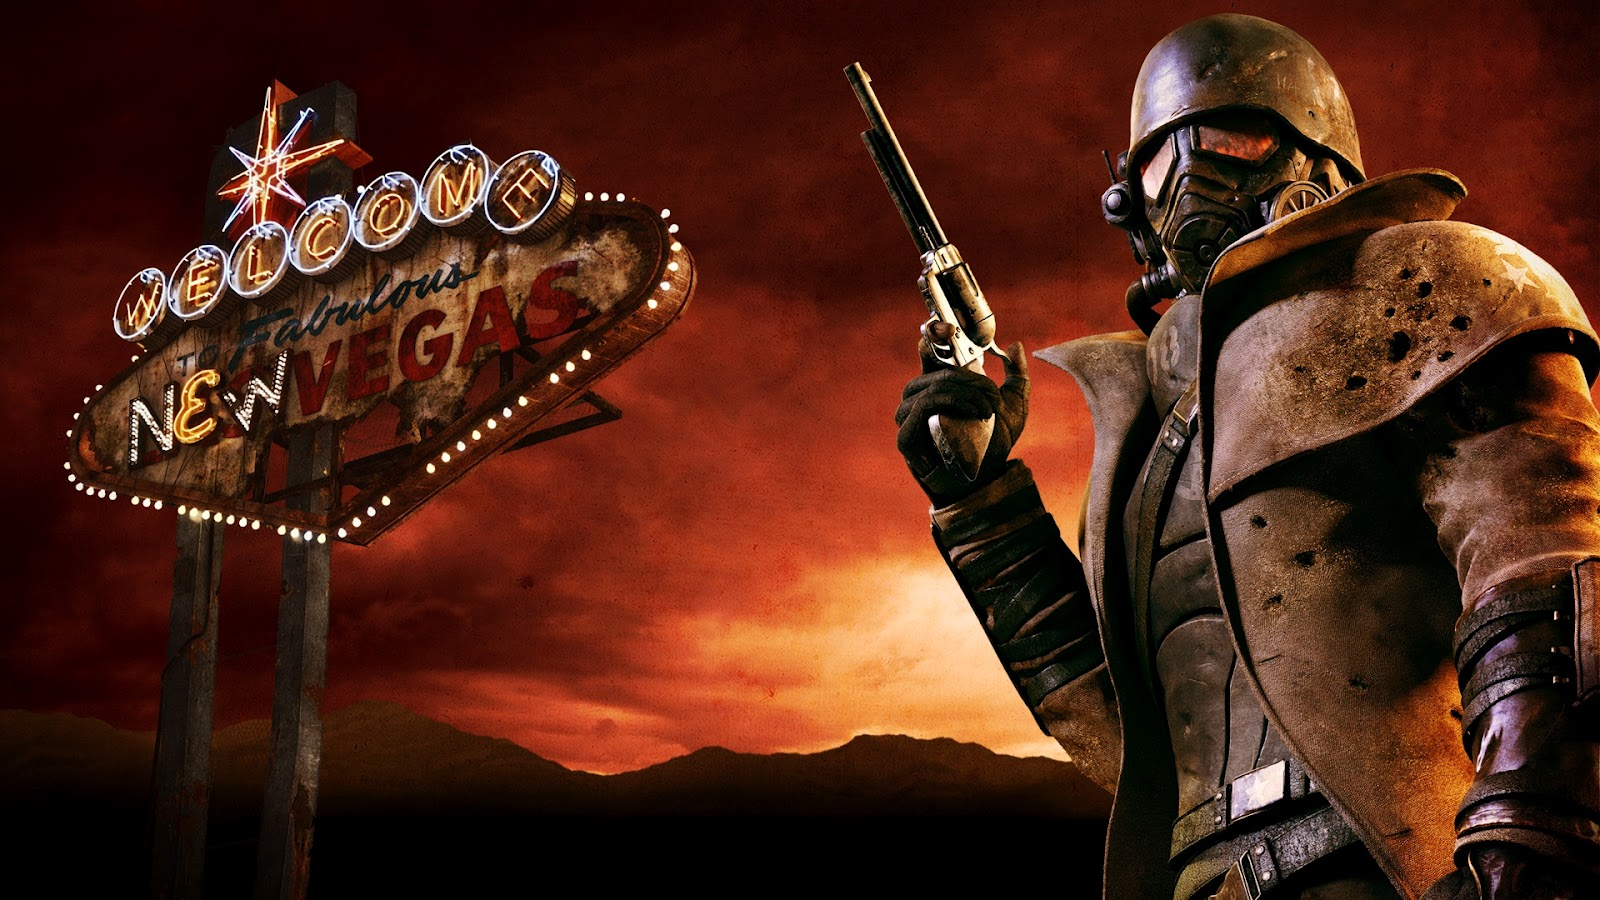 Free Download Falloutnewvegaswallpaper1 Fallout New Vegas